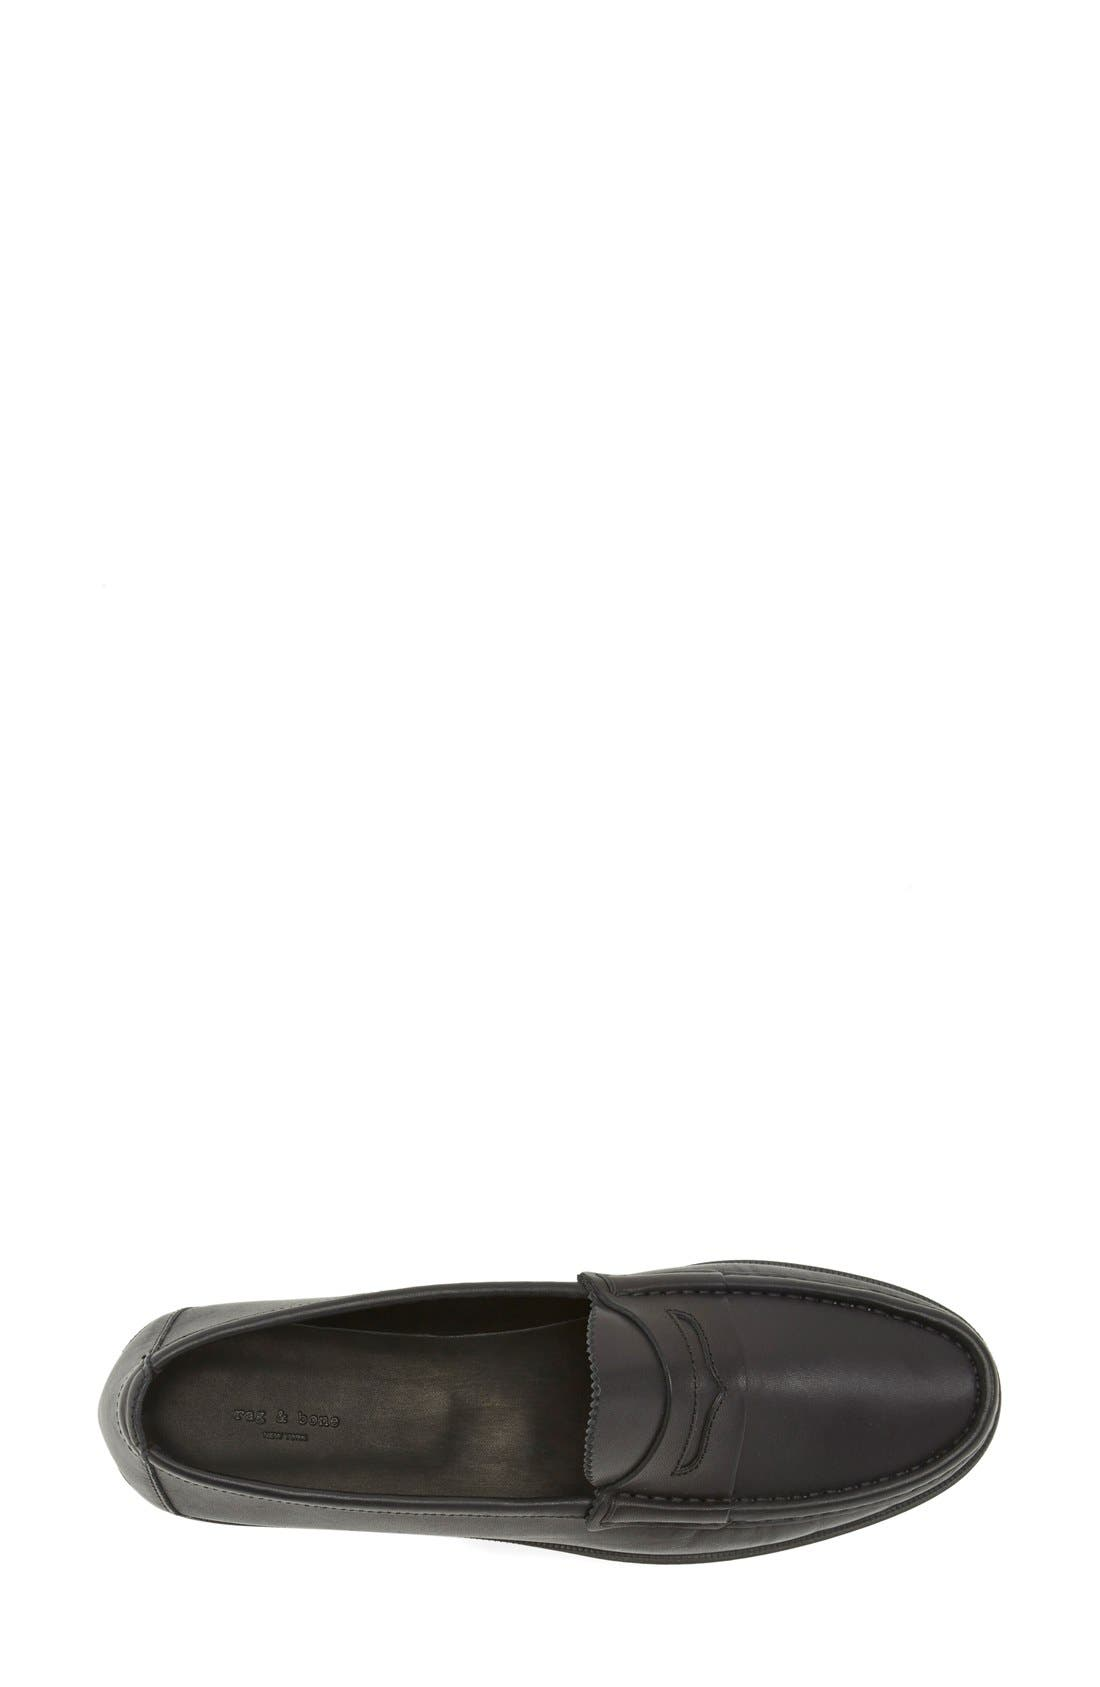 'Tanya' Penny Loafer,                             Alternate thumbnail 3, color,                             Black Leather